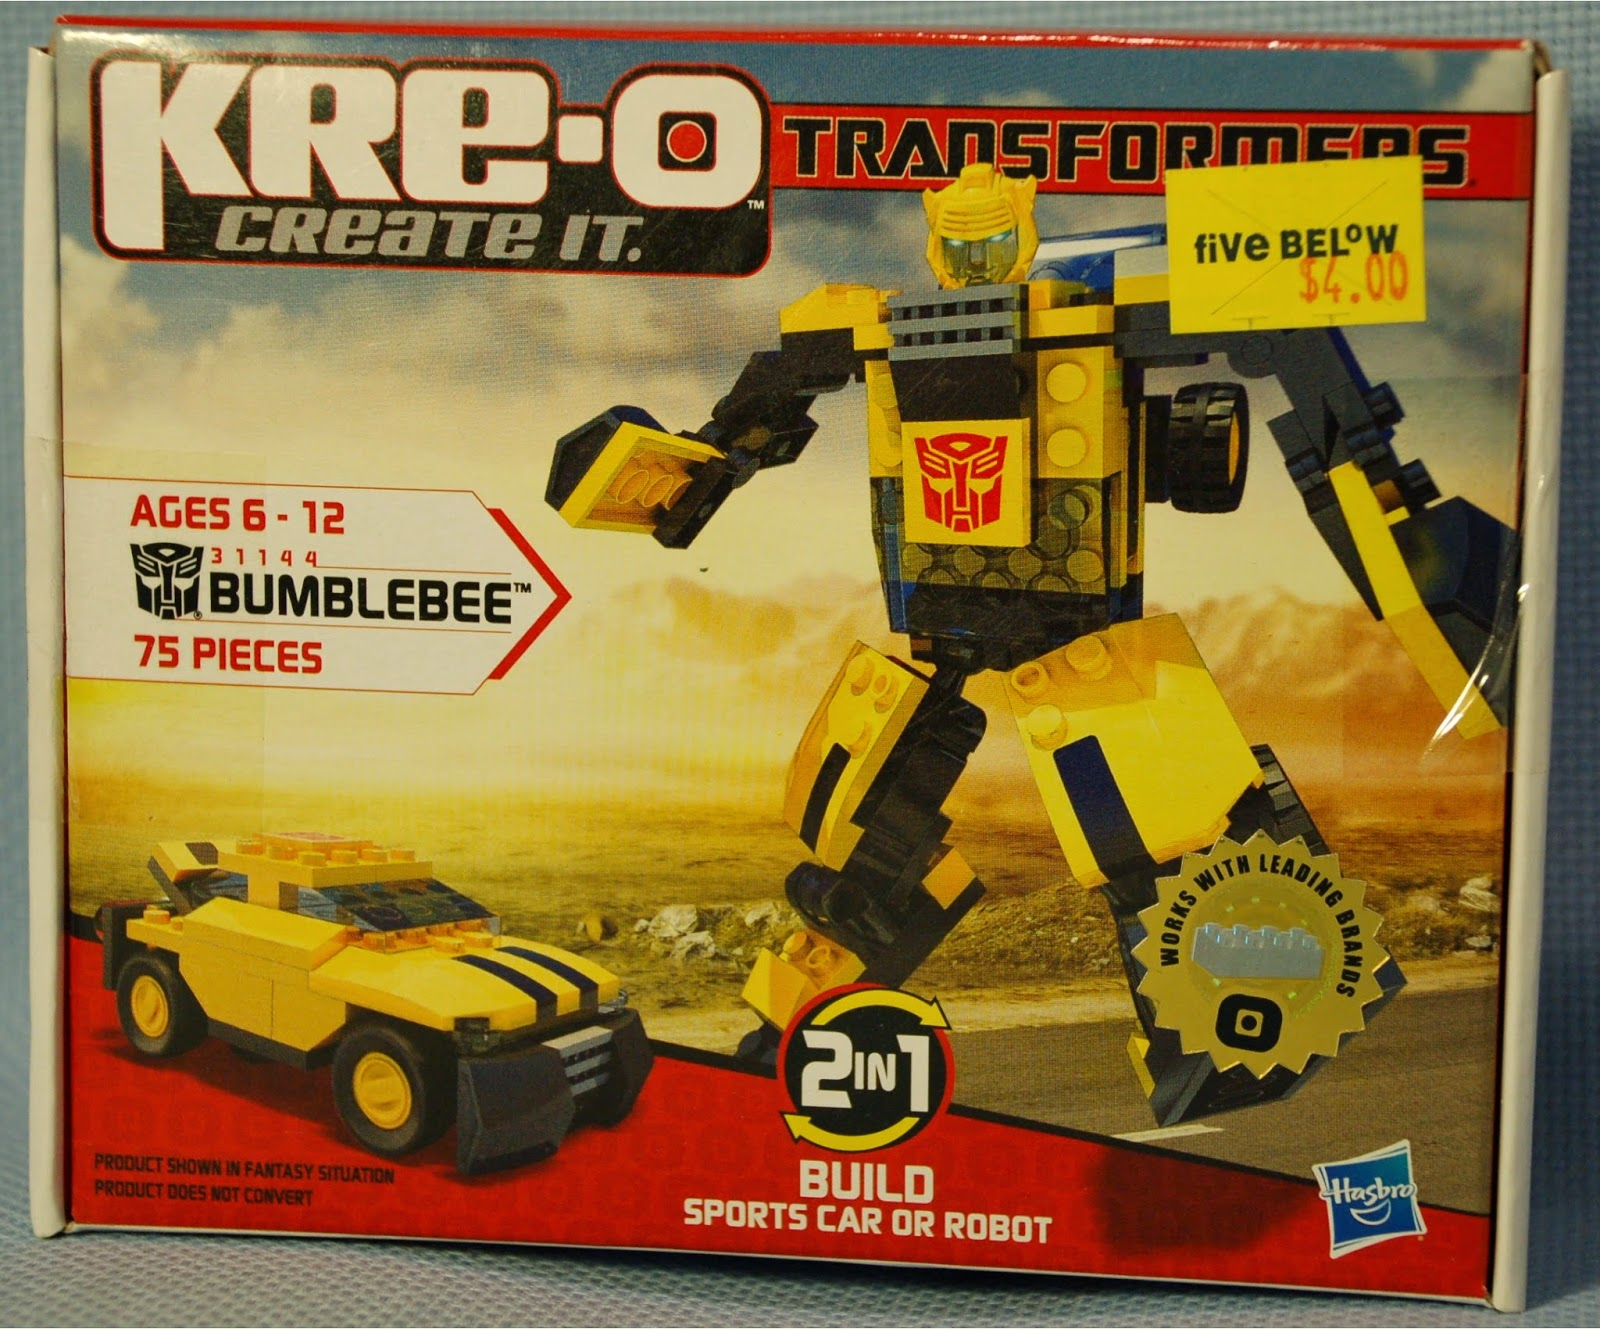 The Mobile Frame Garage Purity 31144 Transformers Bumblebee Review